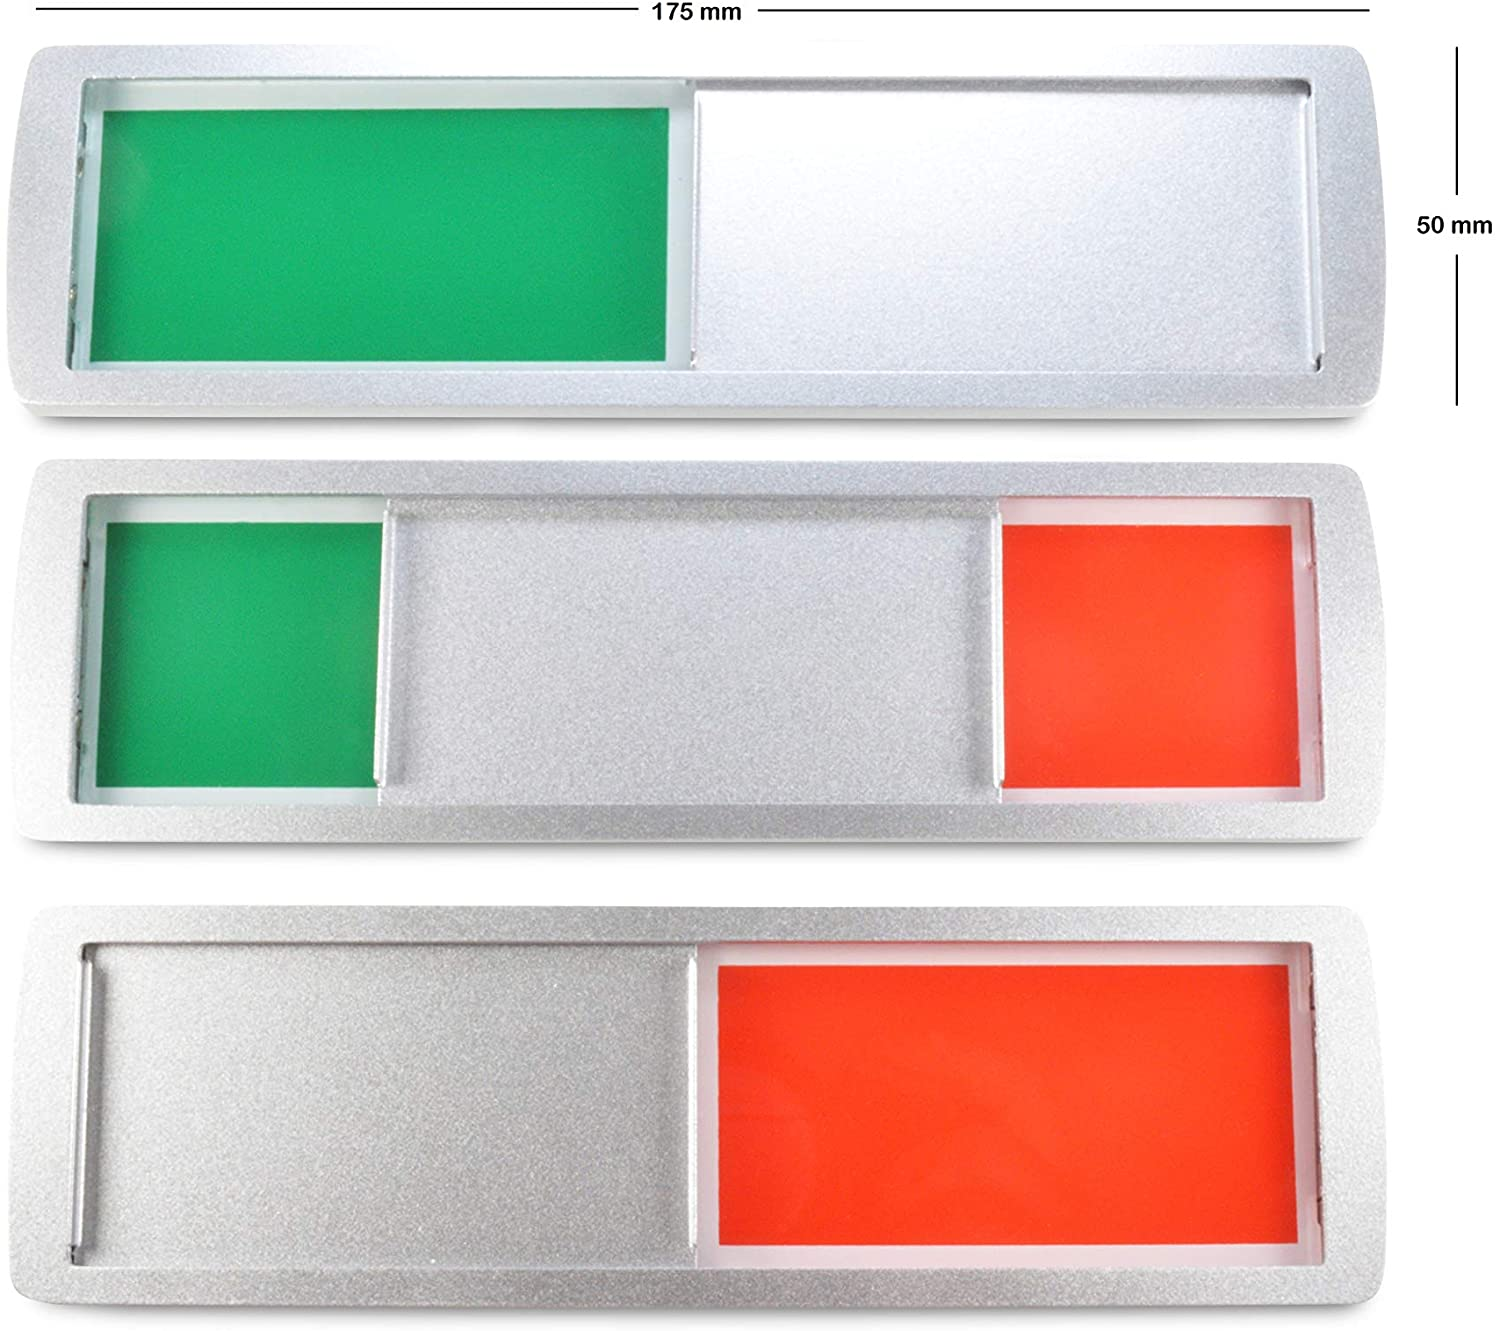 With Slider /& Holding Magnets Back: Strong 3M Adhesive Surface Neutral with Green//Red LARGE FREE//BOCKED Sliding Sign XL Free Adhesive Sticker Free Studded 175 x 5 cm Silver 17.5 x 5 cm